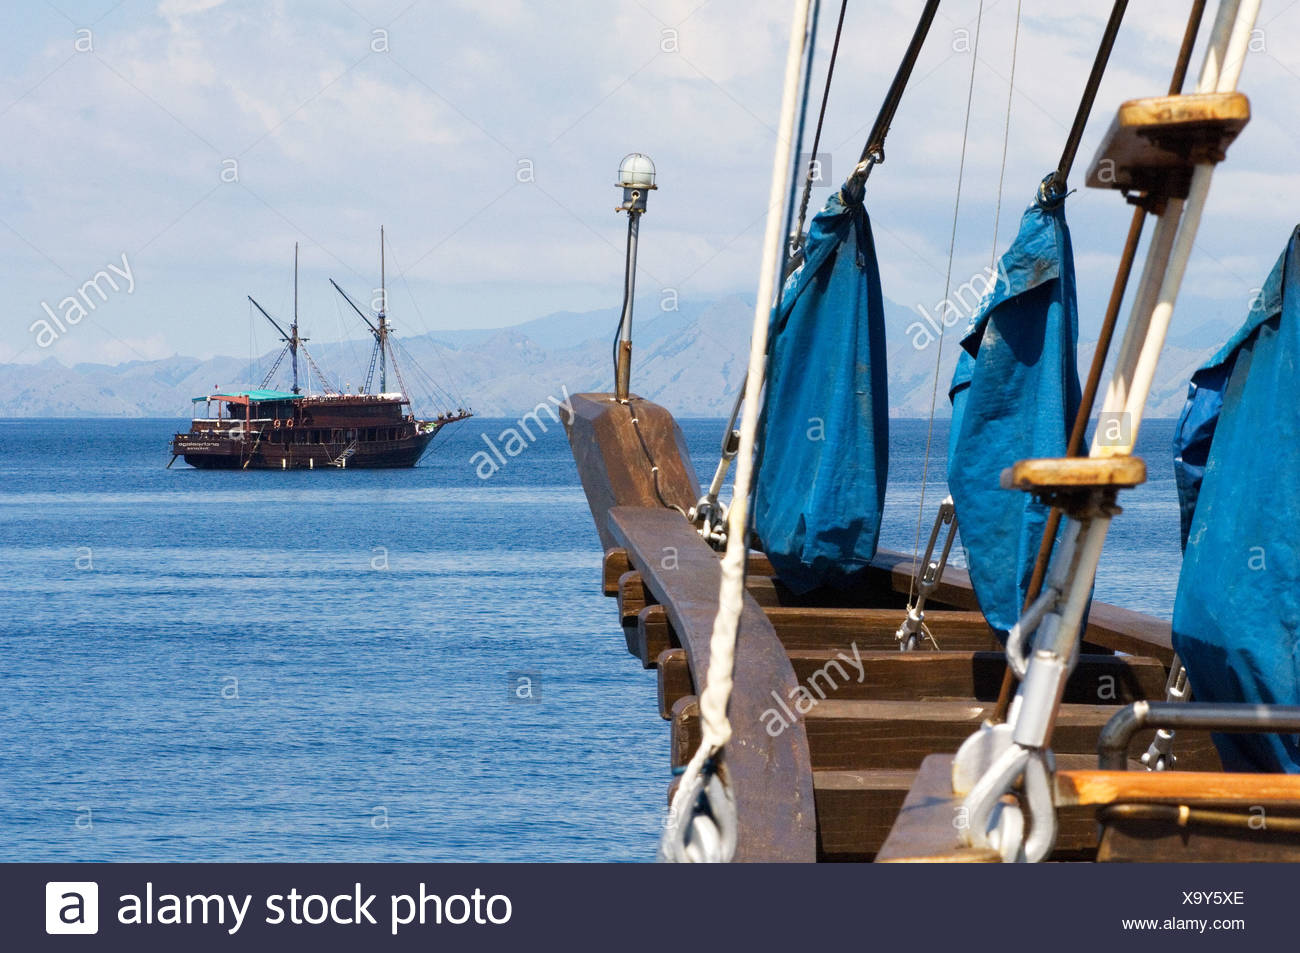 Traditional Indonesian two masted sailing ships, called Pinisi, at anchor. Stock Photo